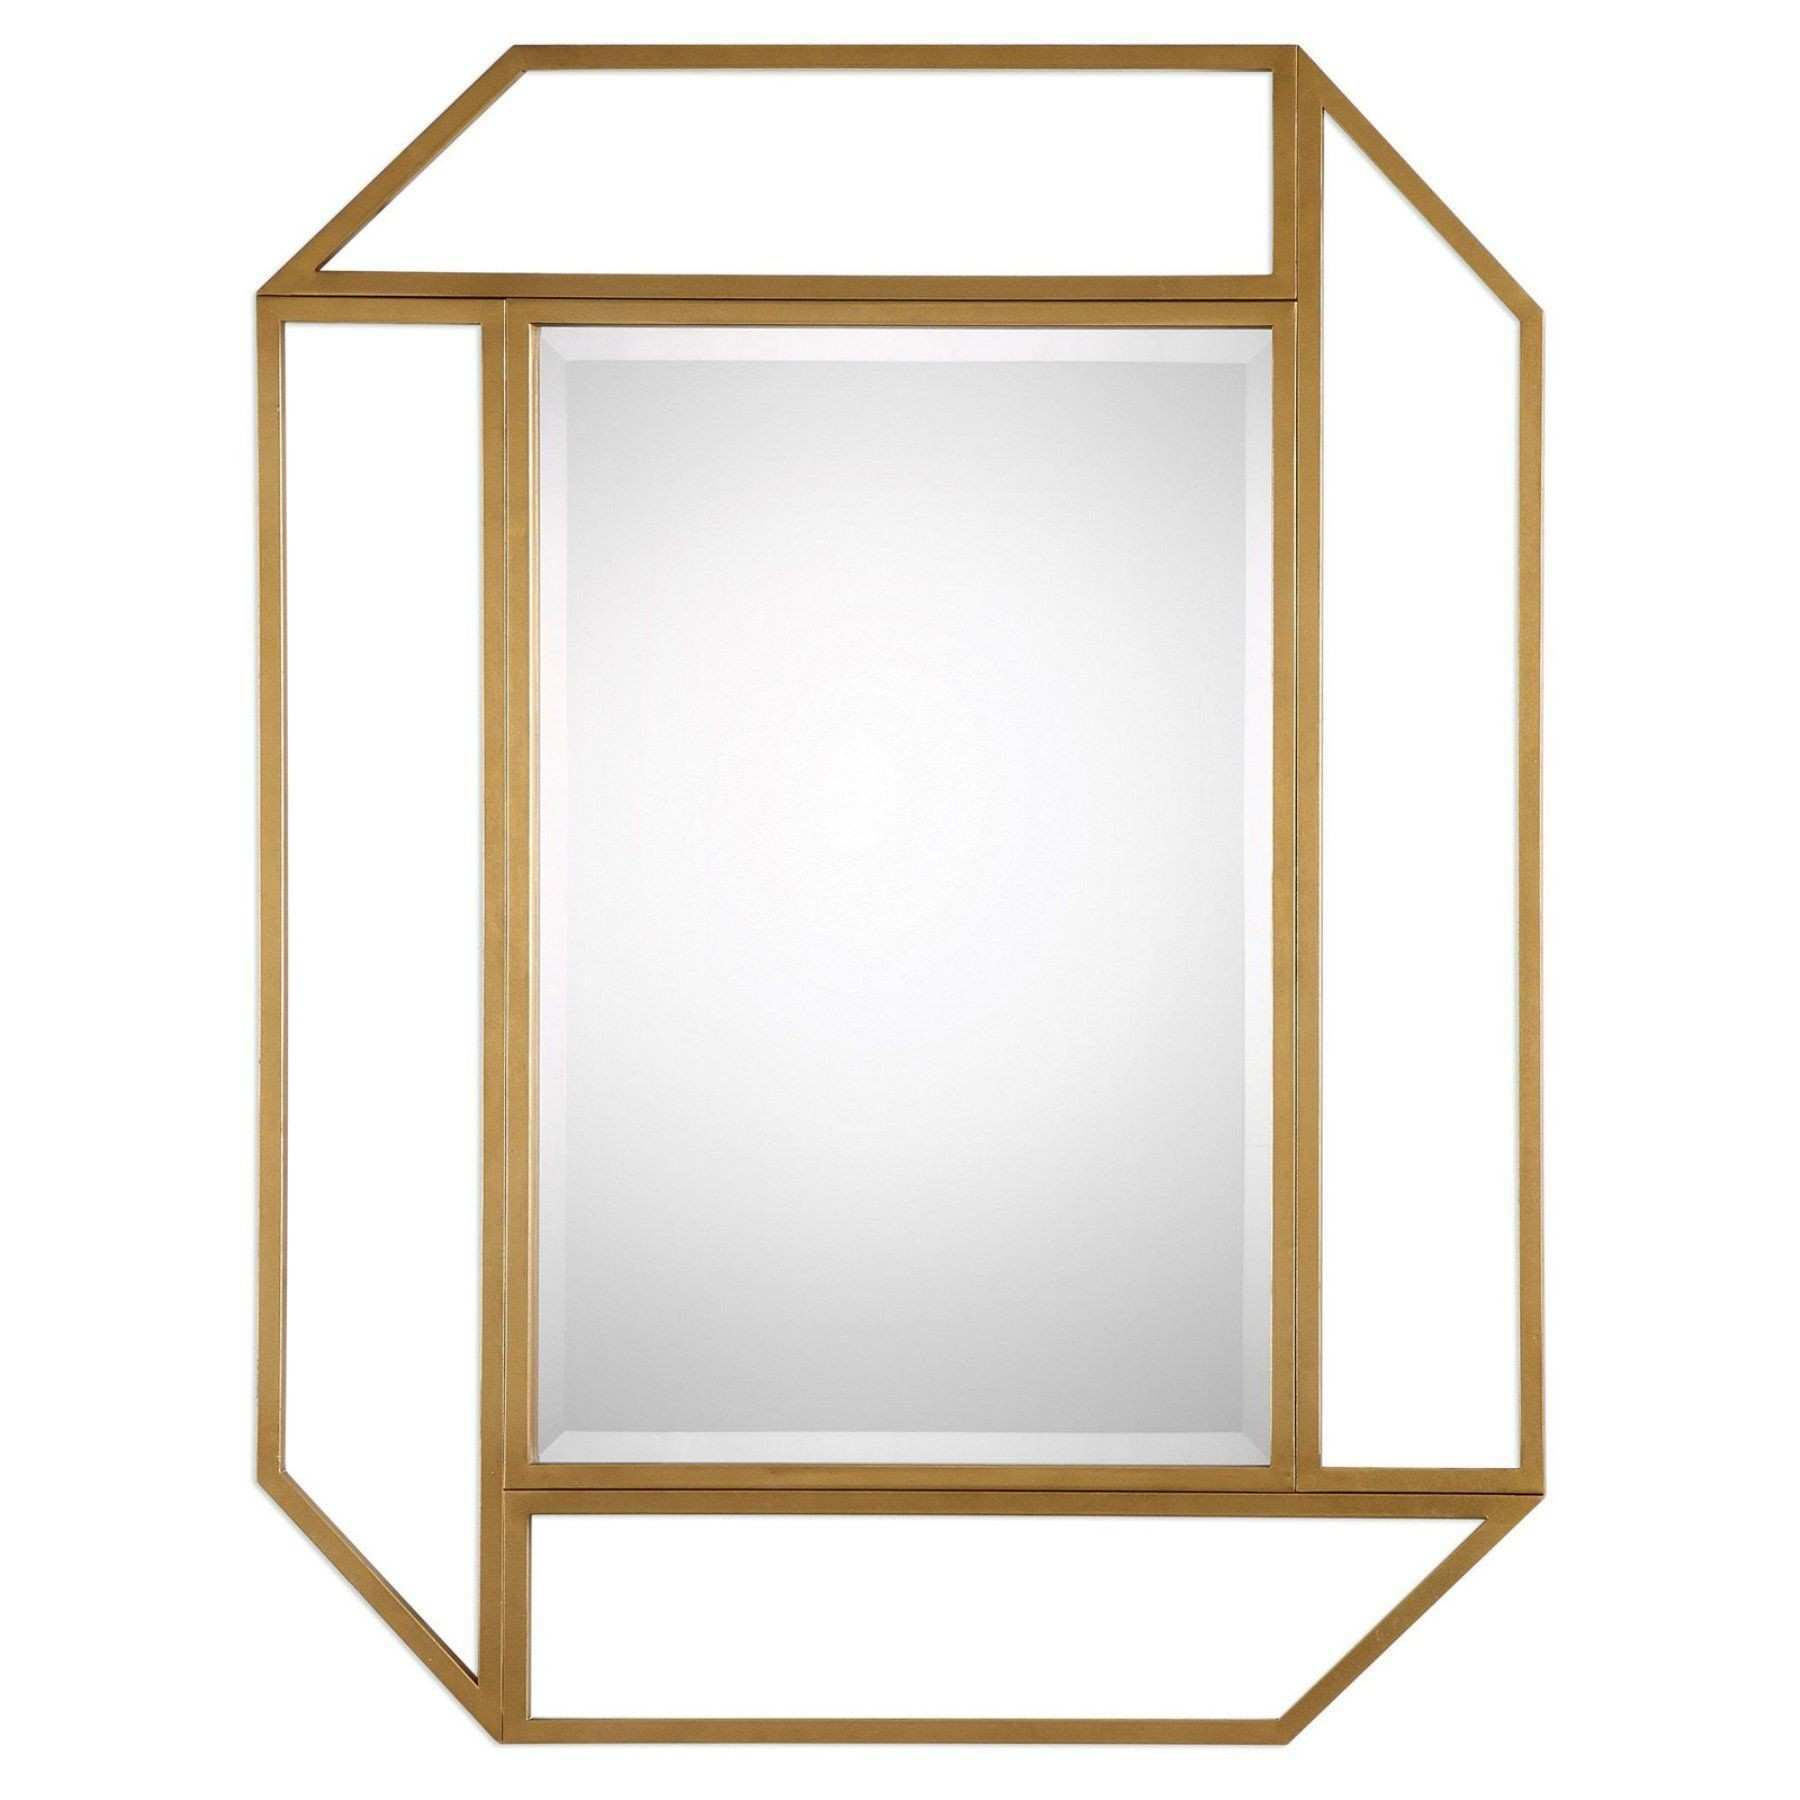 Uttermost Mendez Antiqued Gold Wall Mirror 9219